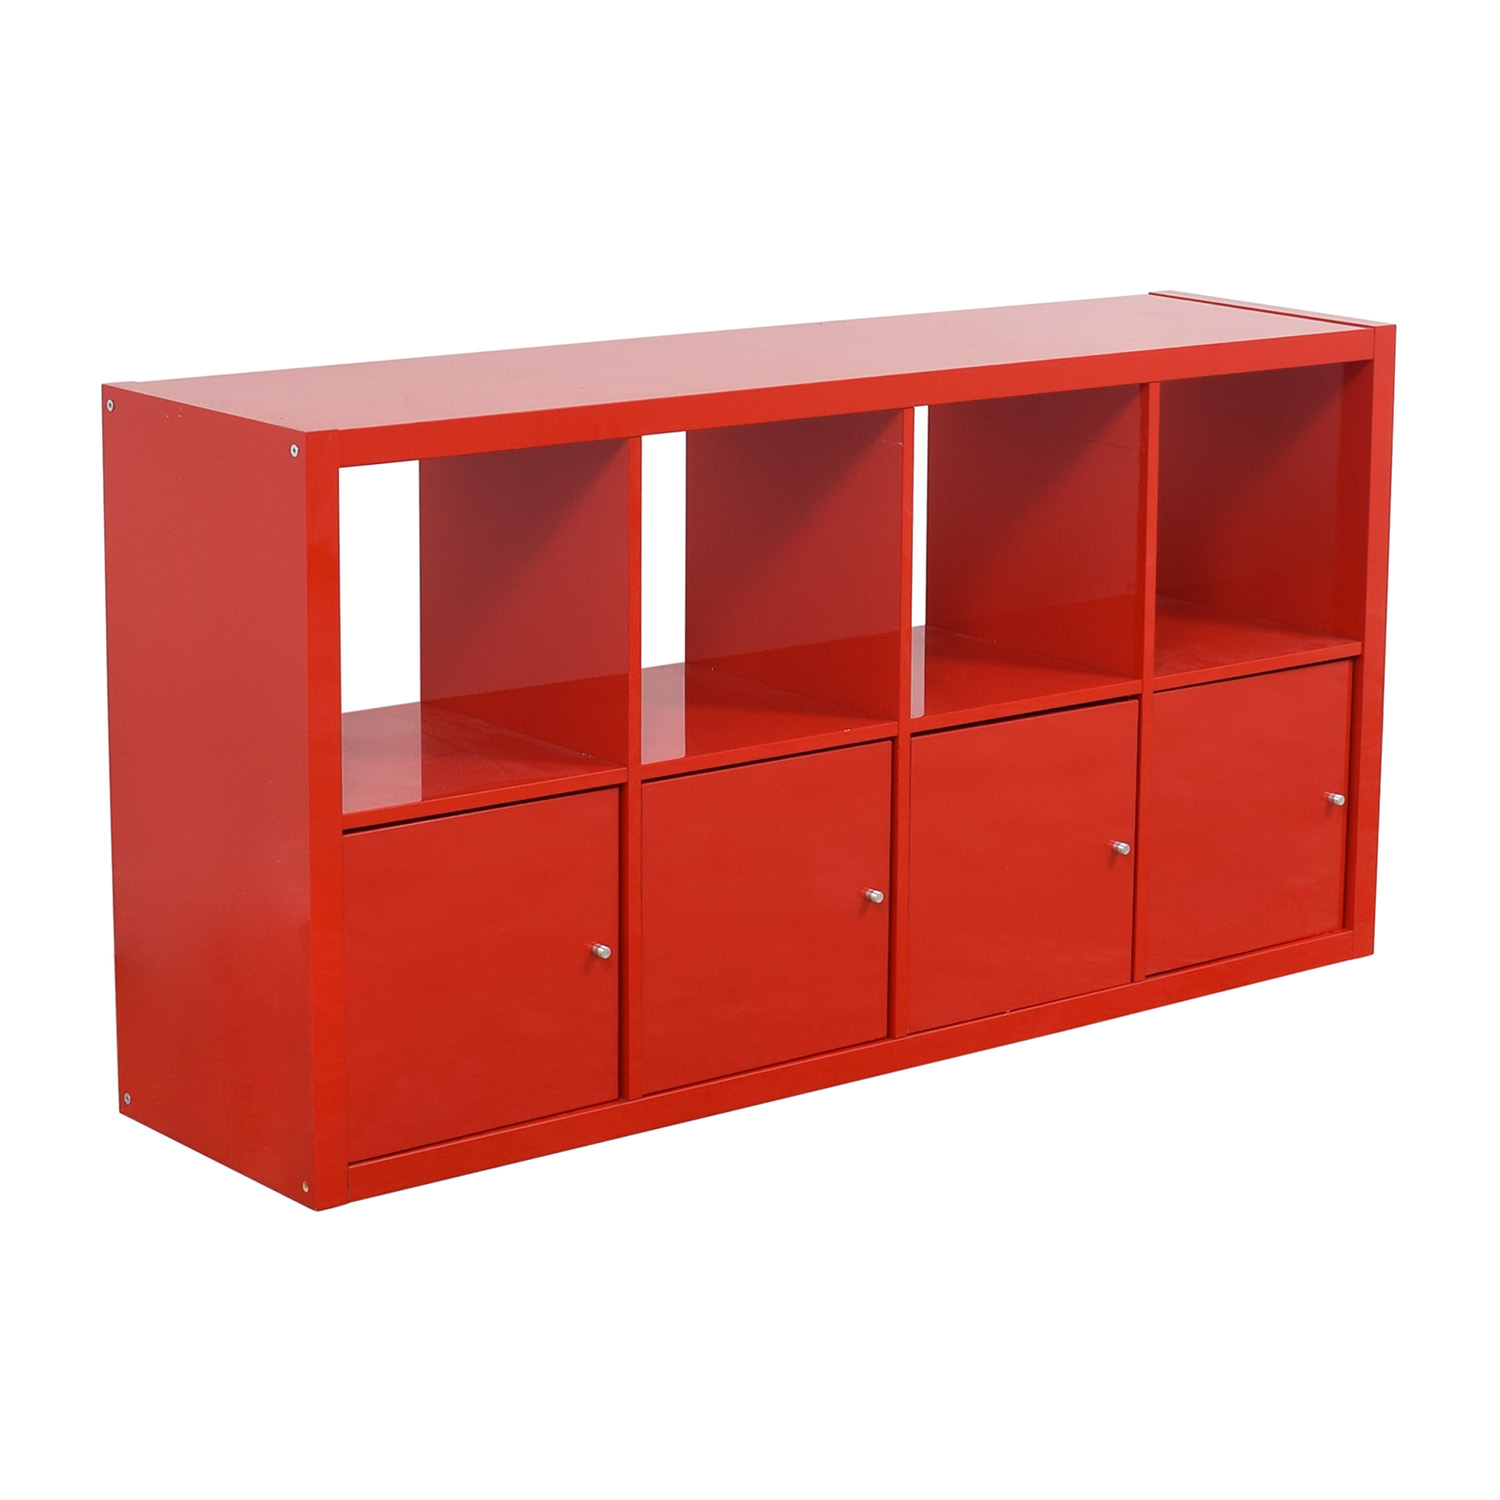 IKEA IKEA Red Shelving With Storage Cabinets